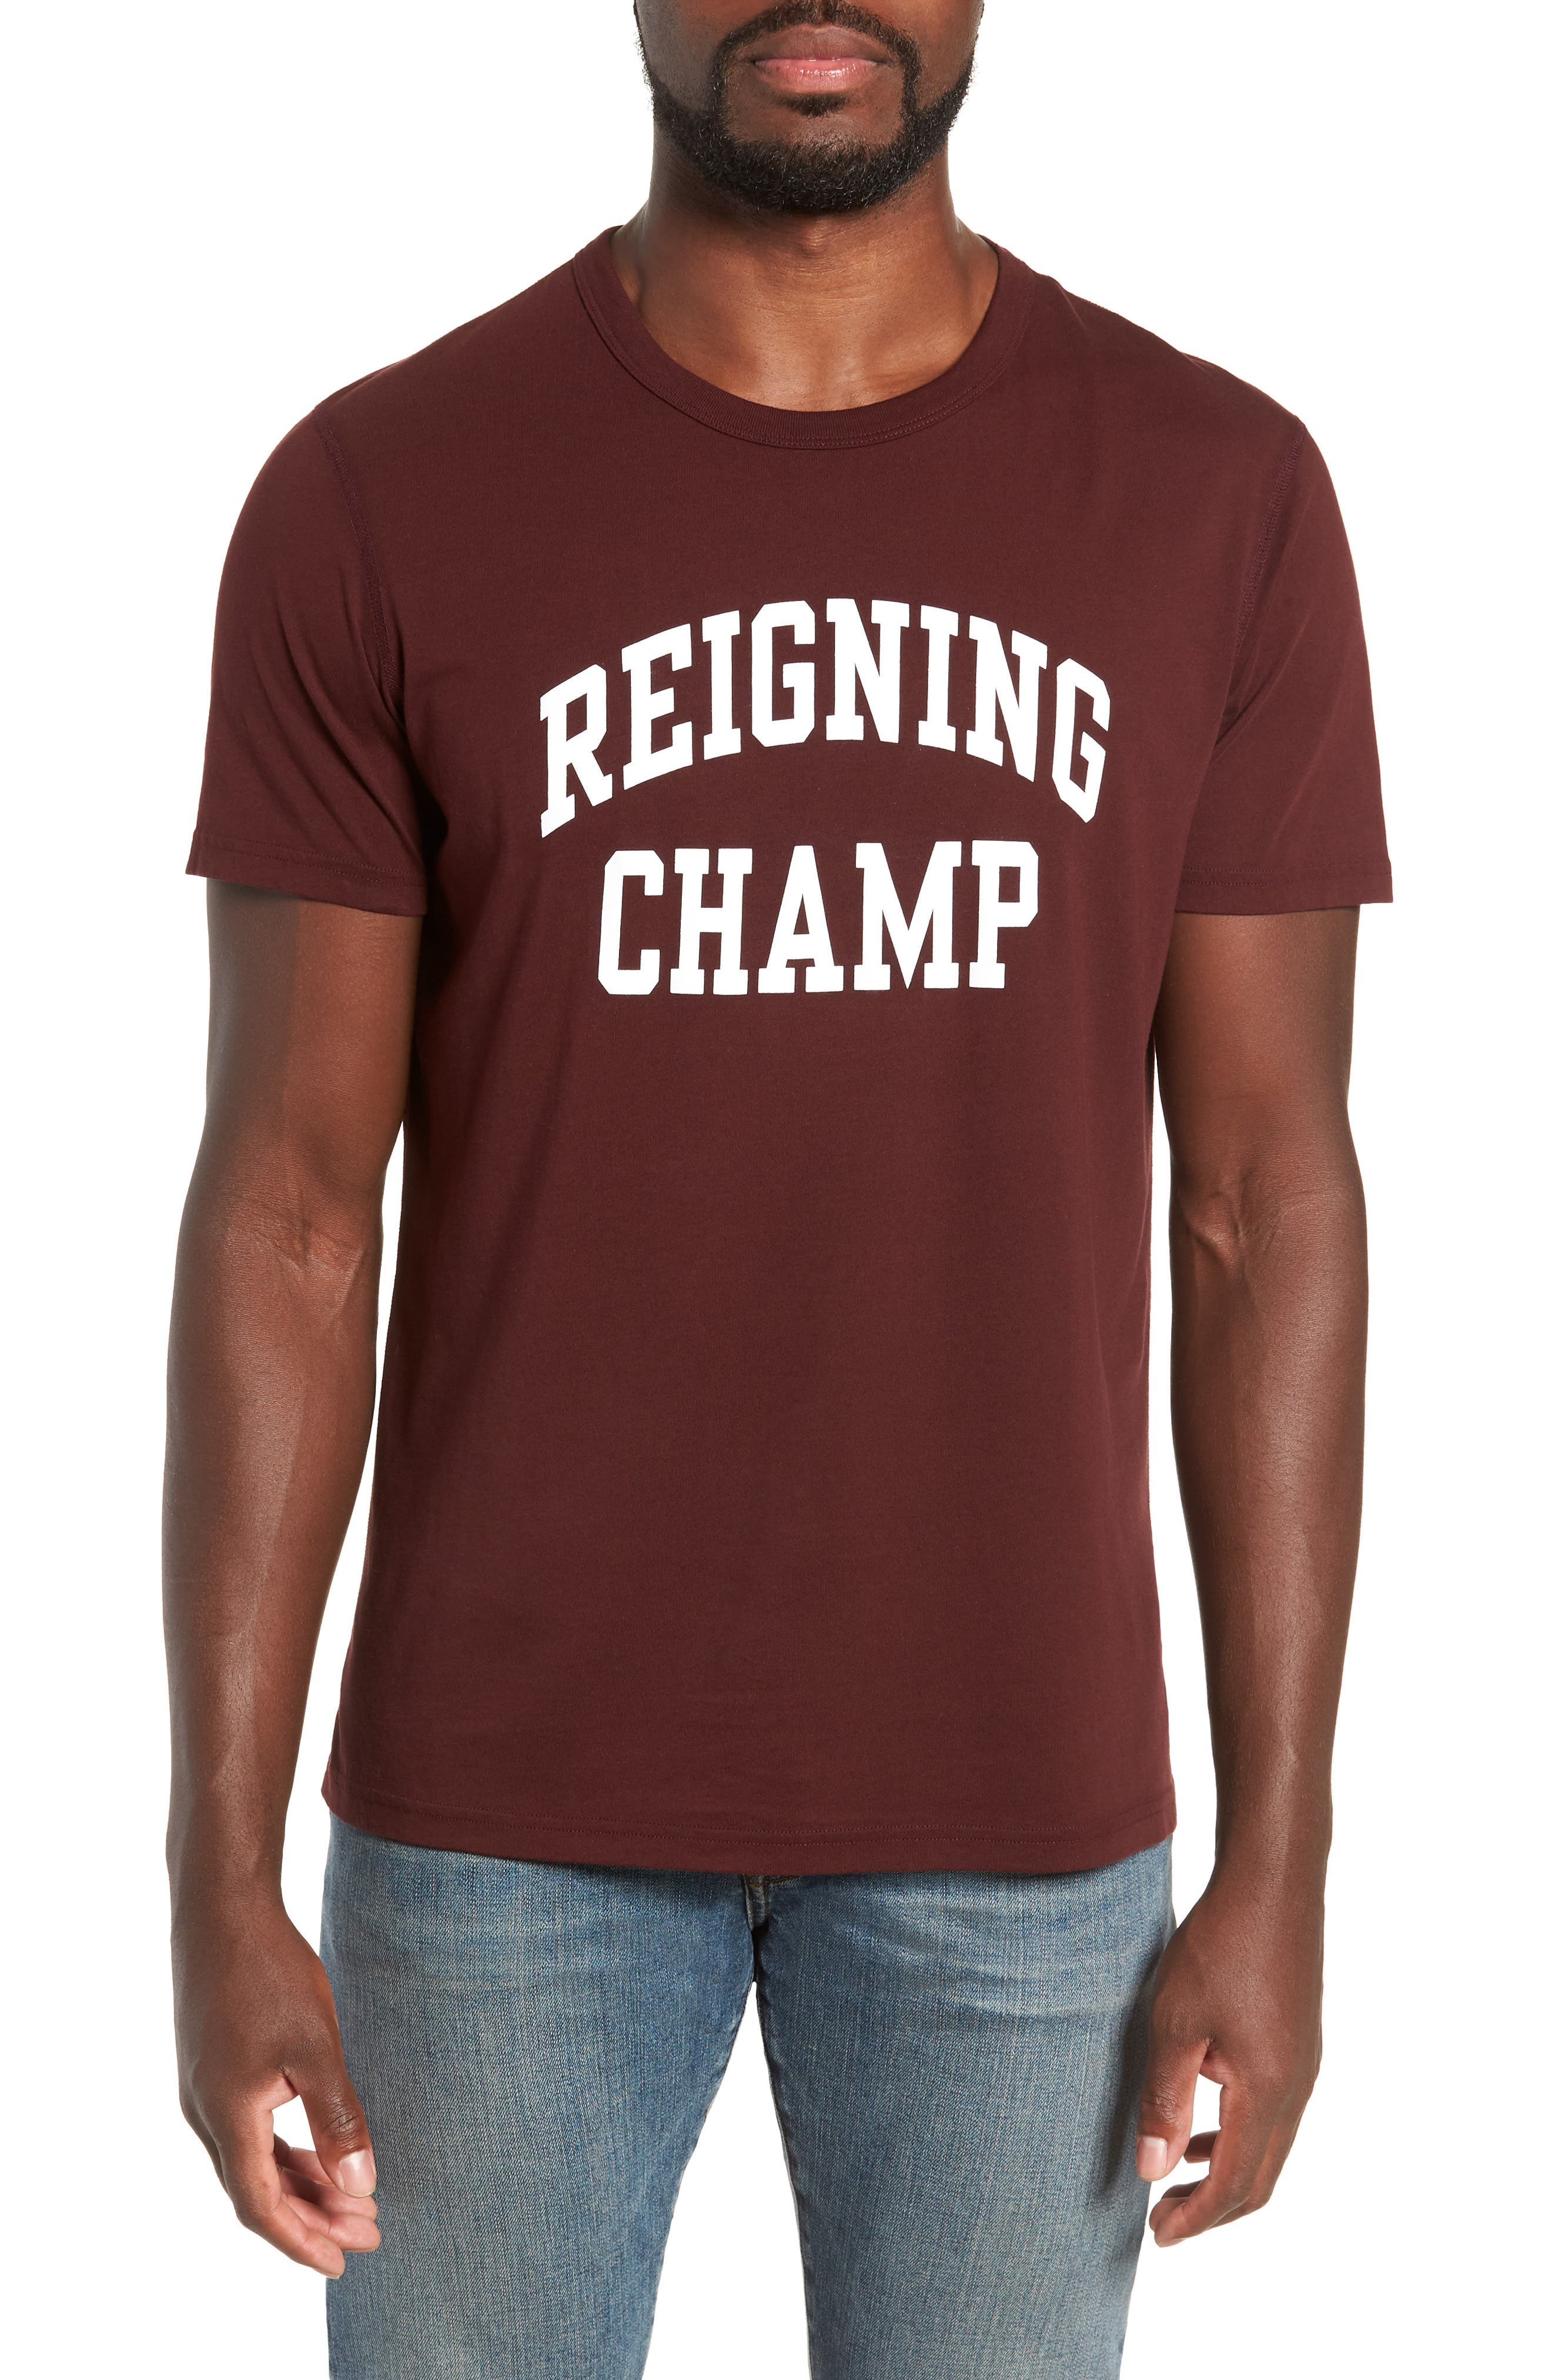 REIGNING CHAMP Ivy League Logo T-Shirt in Crimson/ White